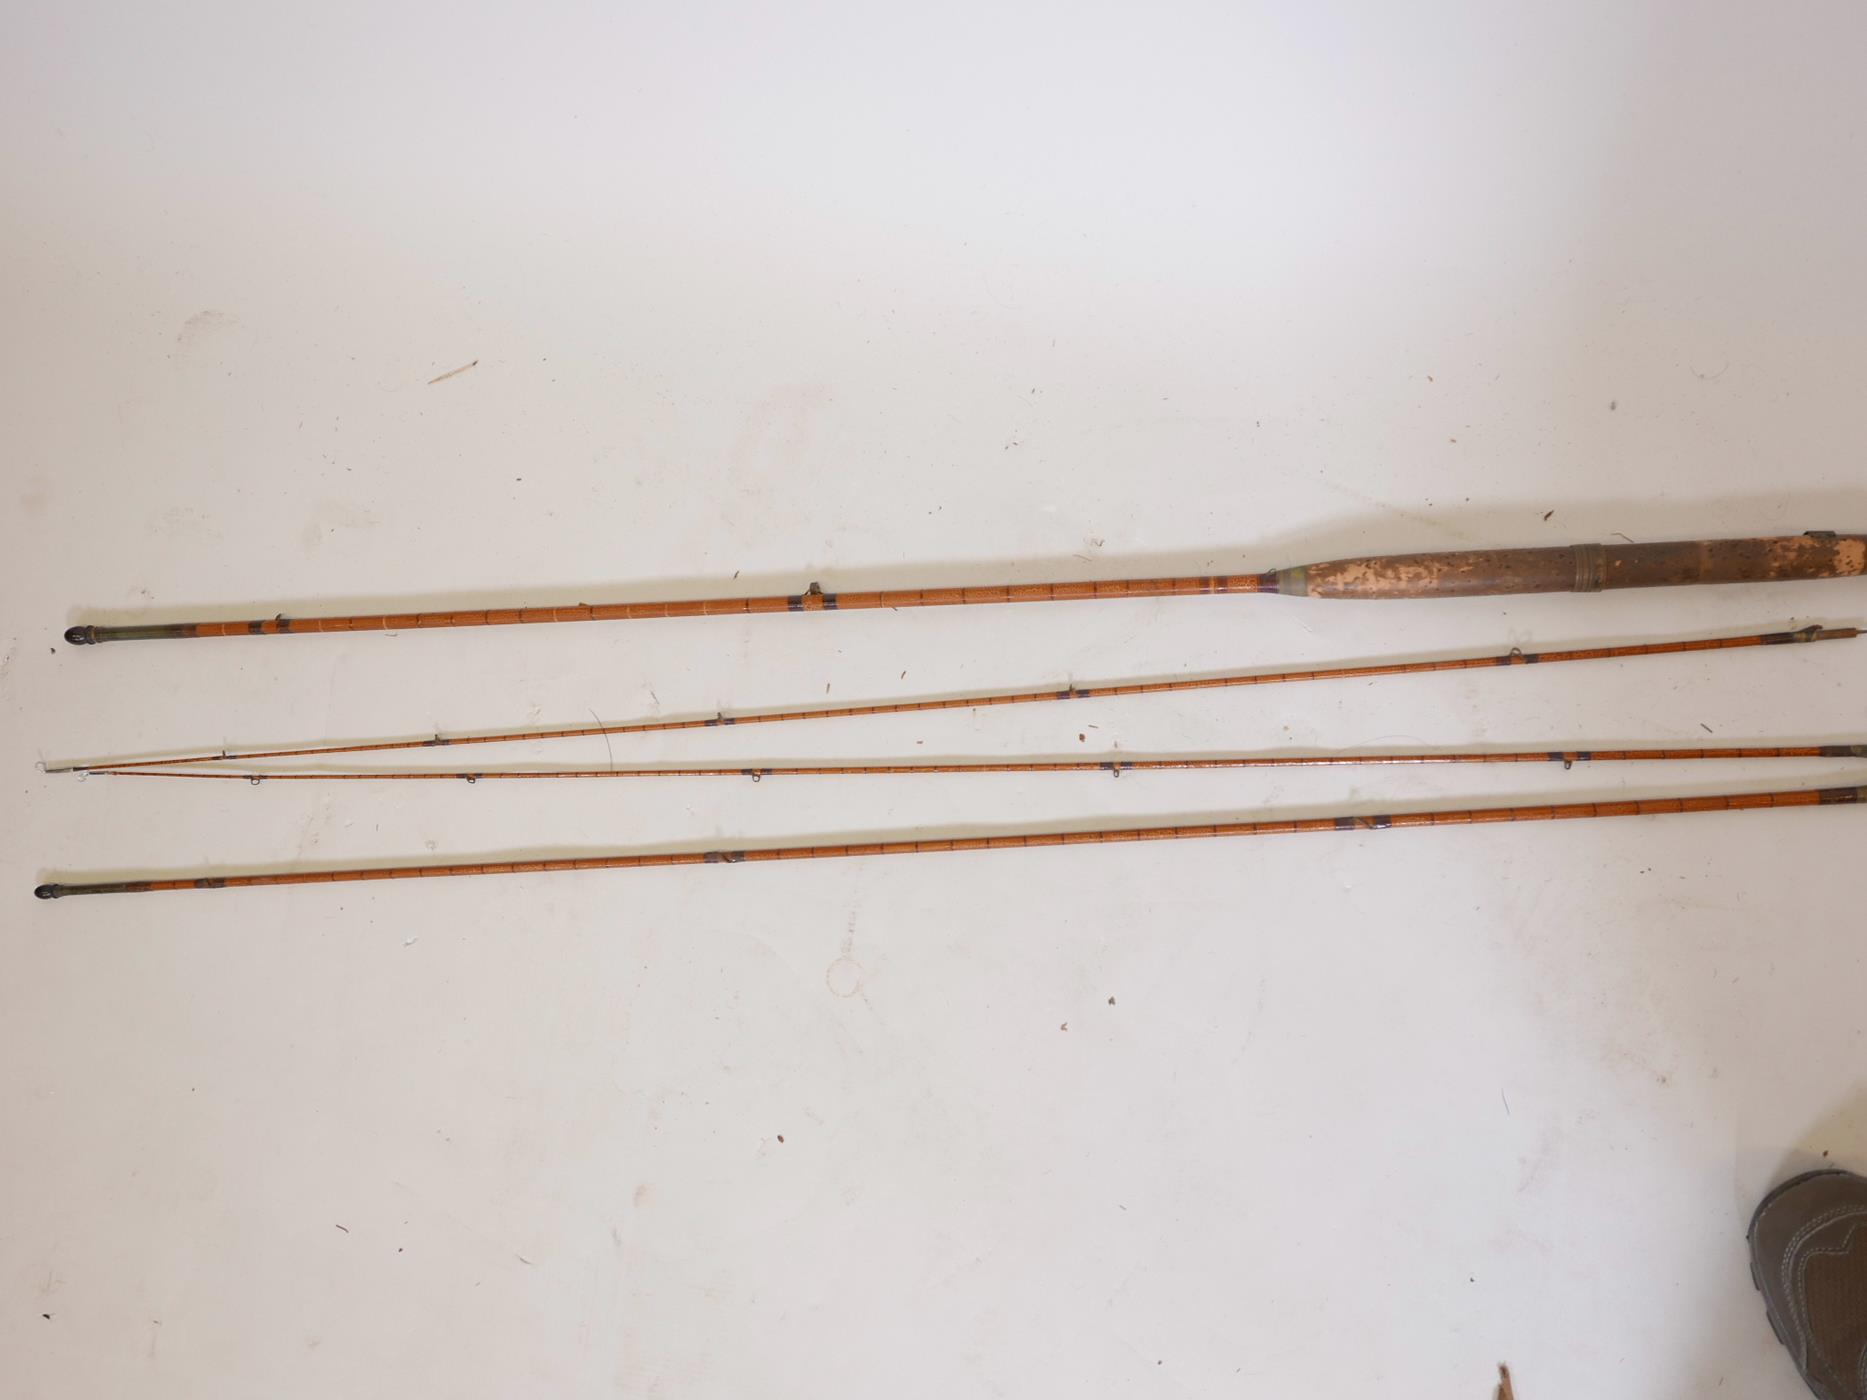 Lot 76 - A Hardy Bros split cane three section gold medal fly fishing rod with spare top section, original